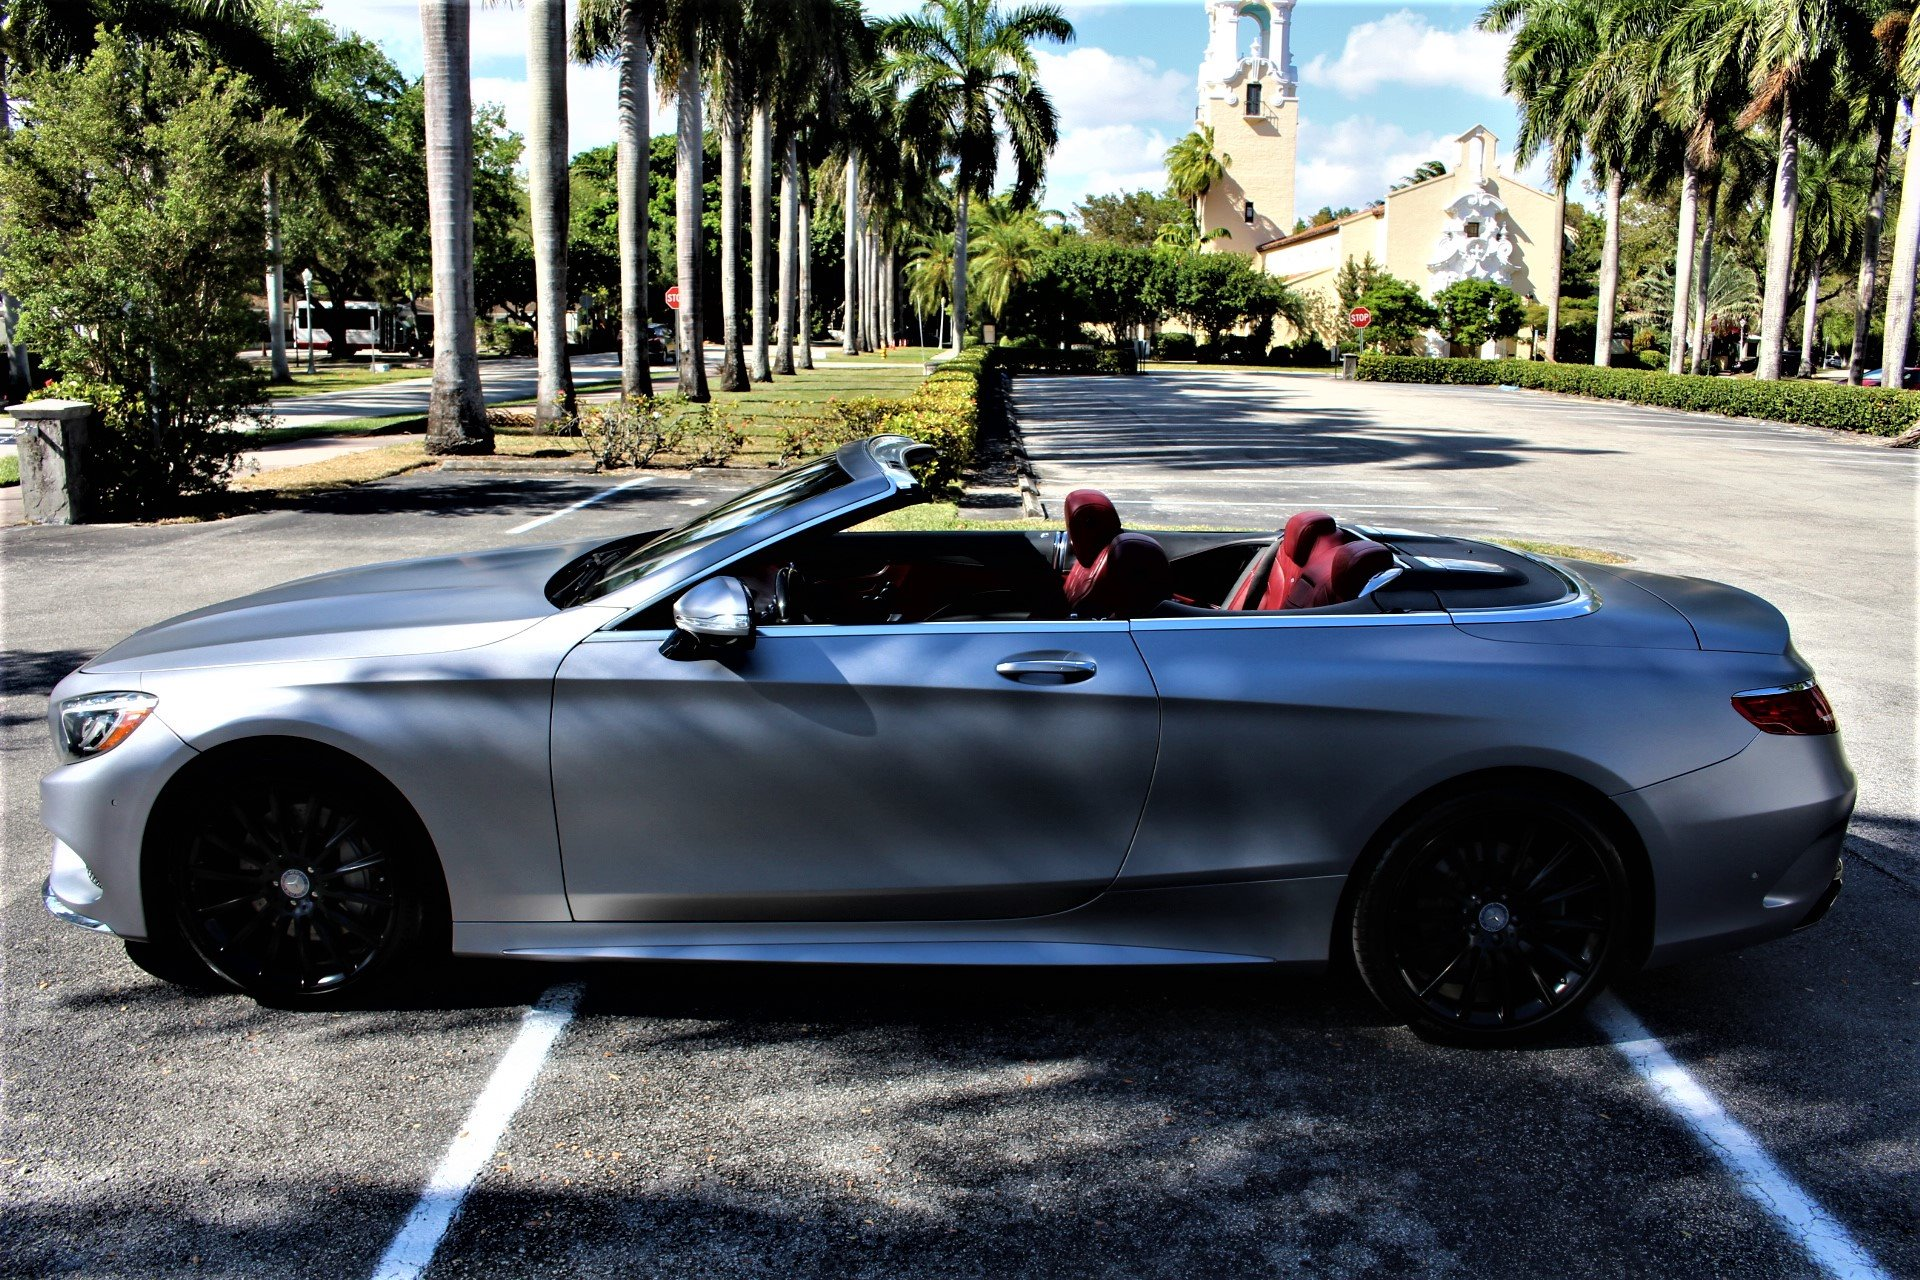 Used 2017 Mercedes-Benz S-Class S 550 for sale Sold at The Gables Sports Cars in Miami FL 33146 3